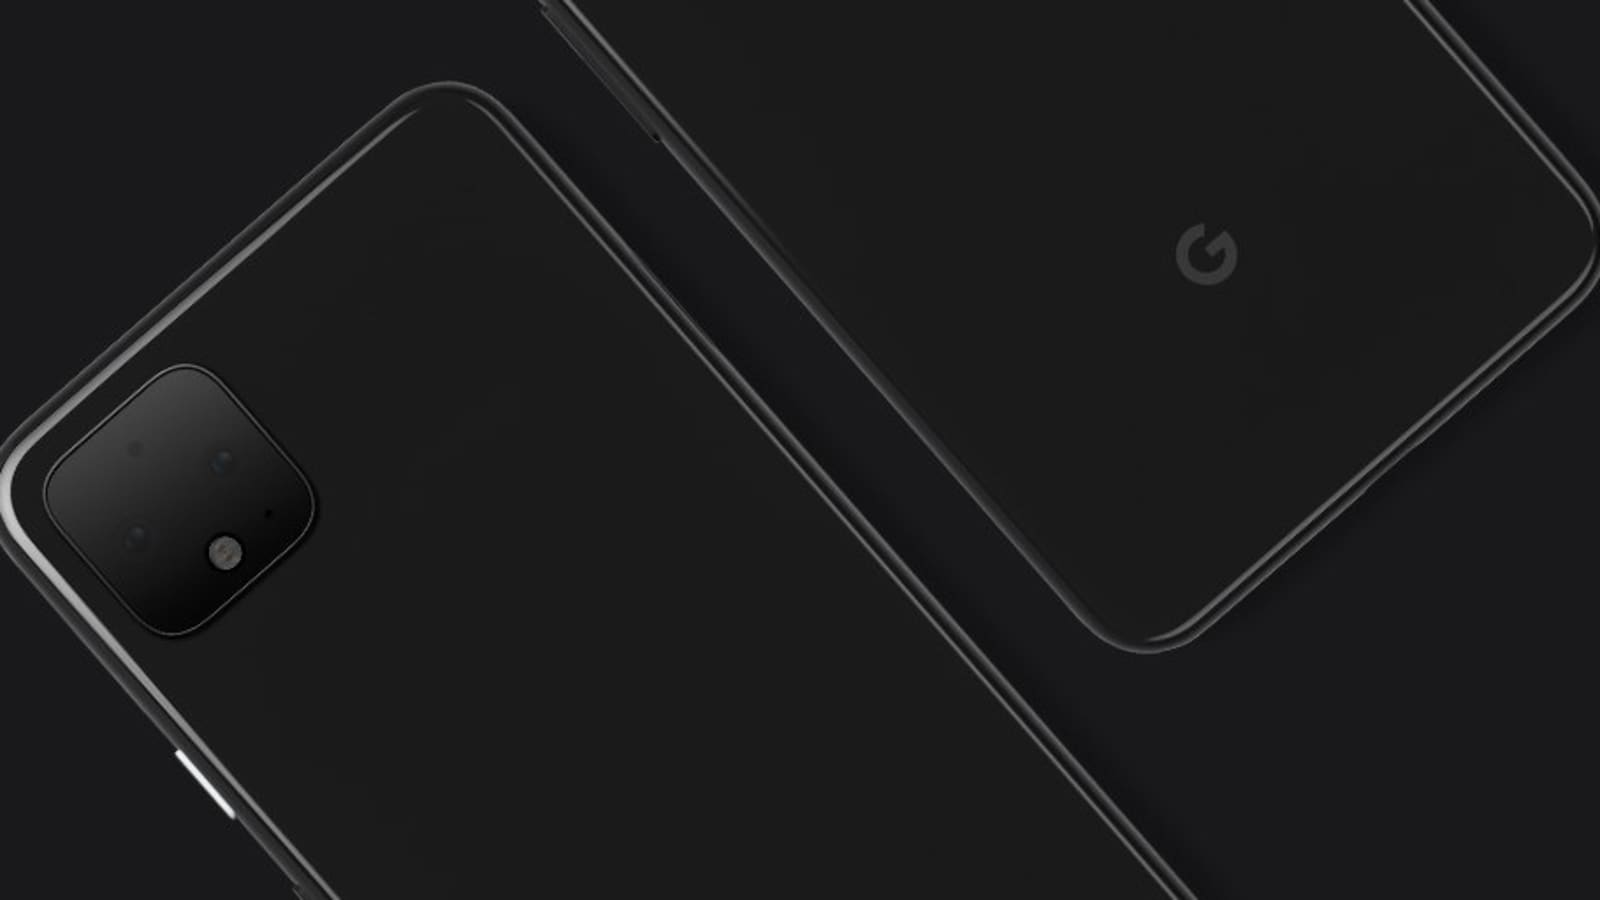 Google Pixel 4 Picture Published By Google On Twitter